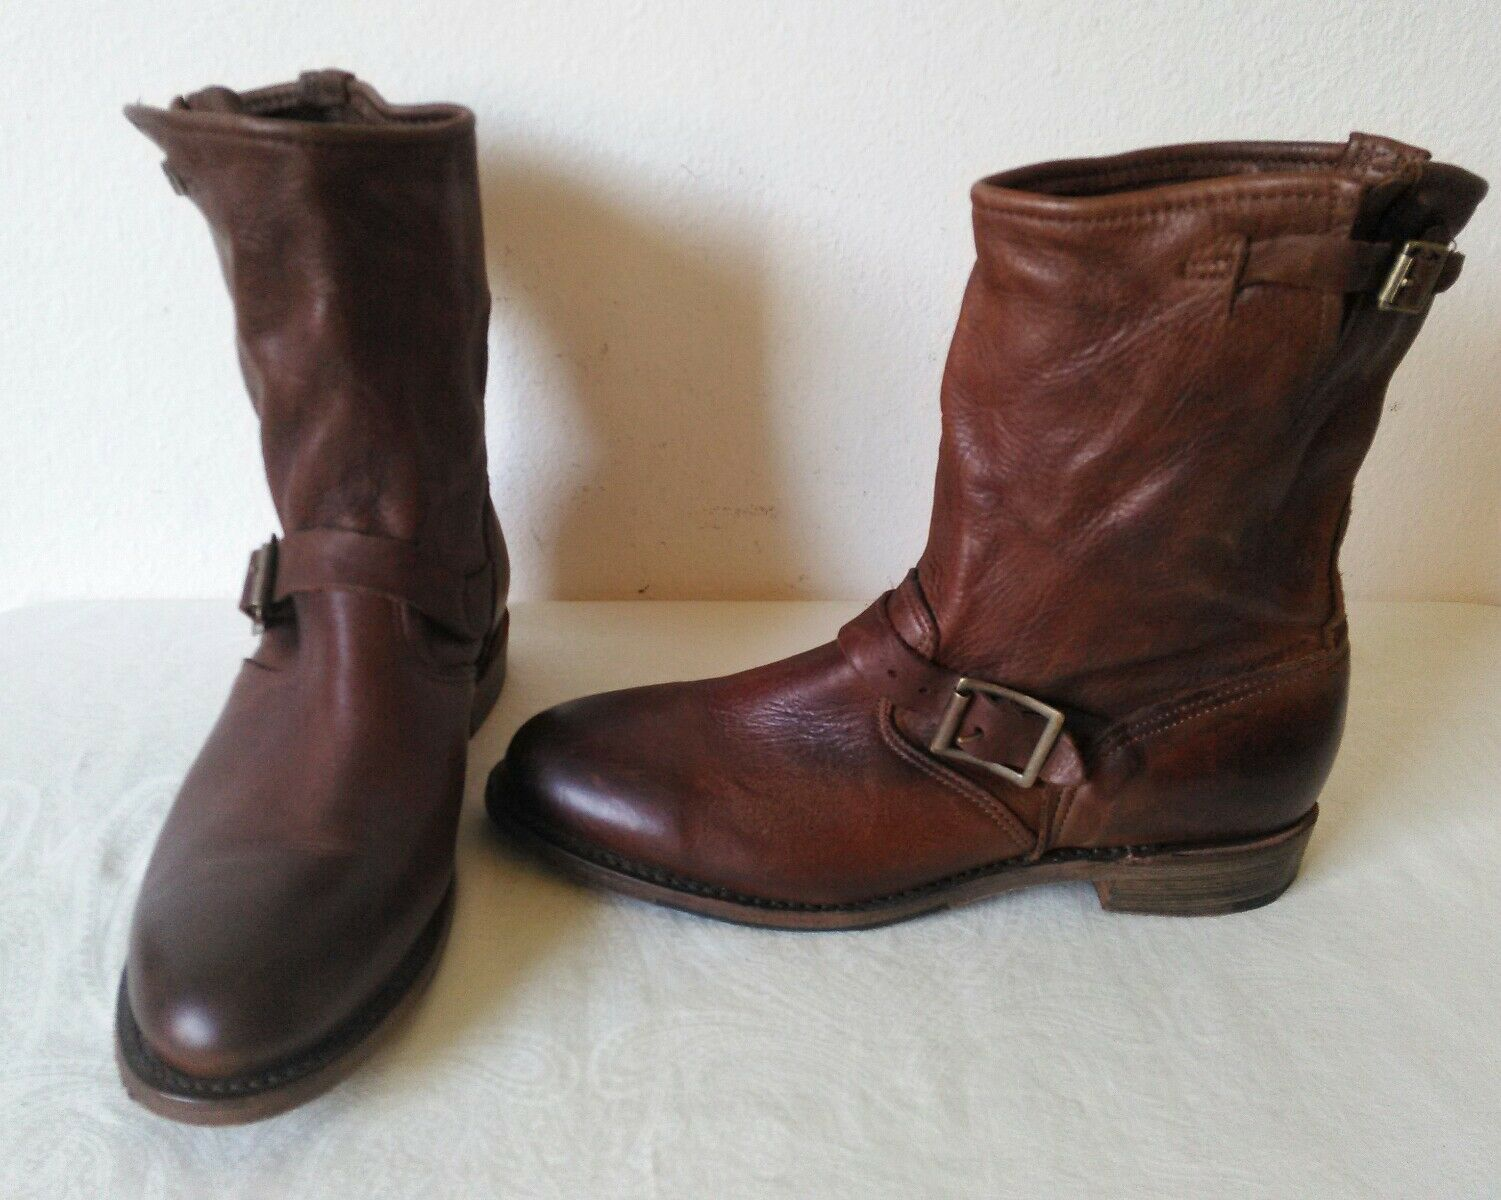 New Braun High quality Vintage schuhe Company women's Braun New leather ankle Stiefel Size 9 M 31eed7